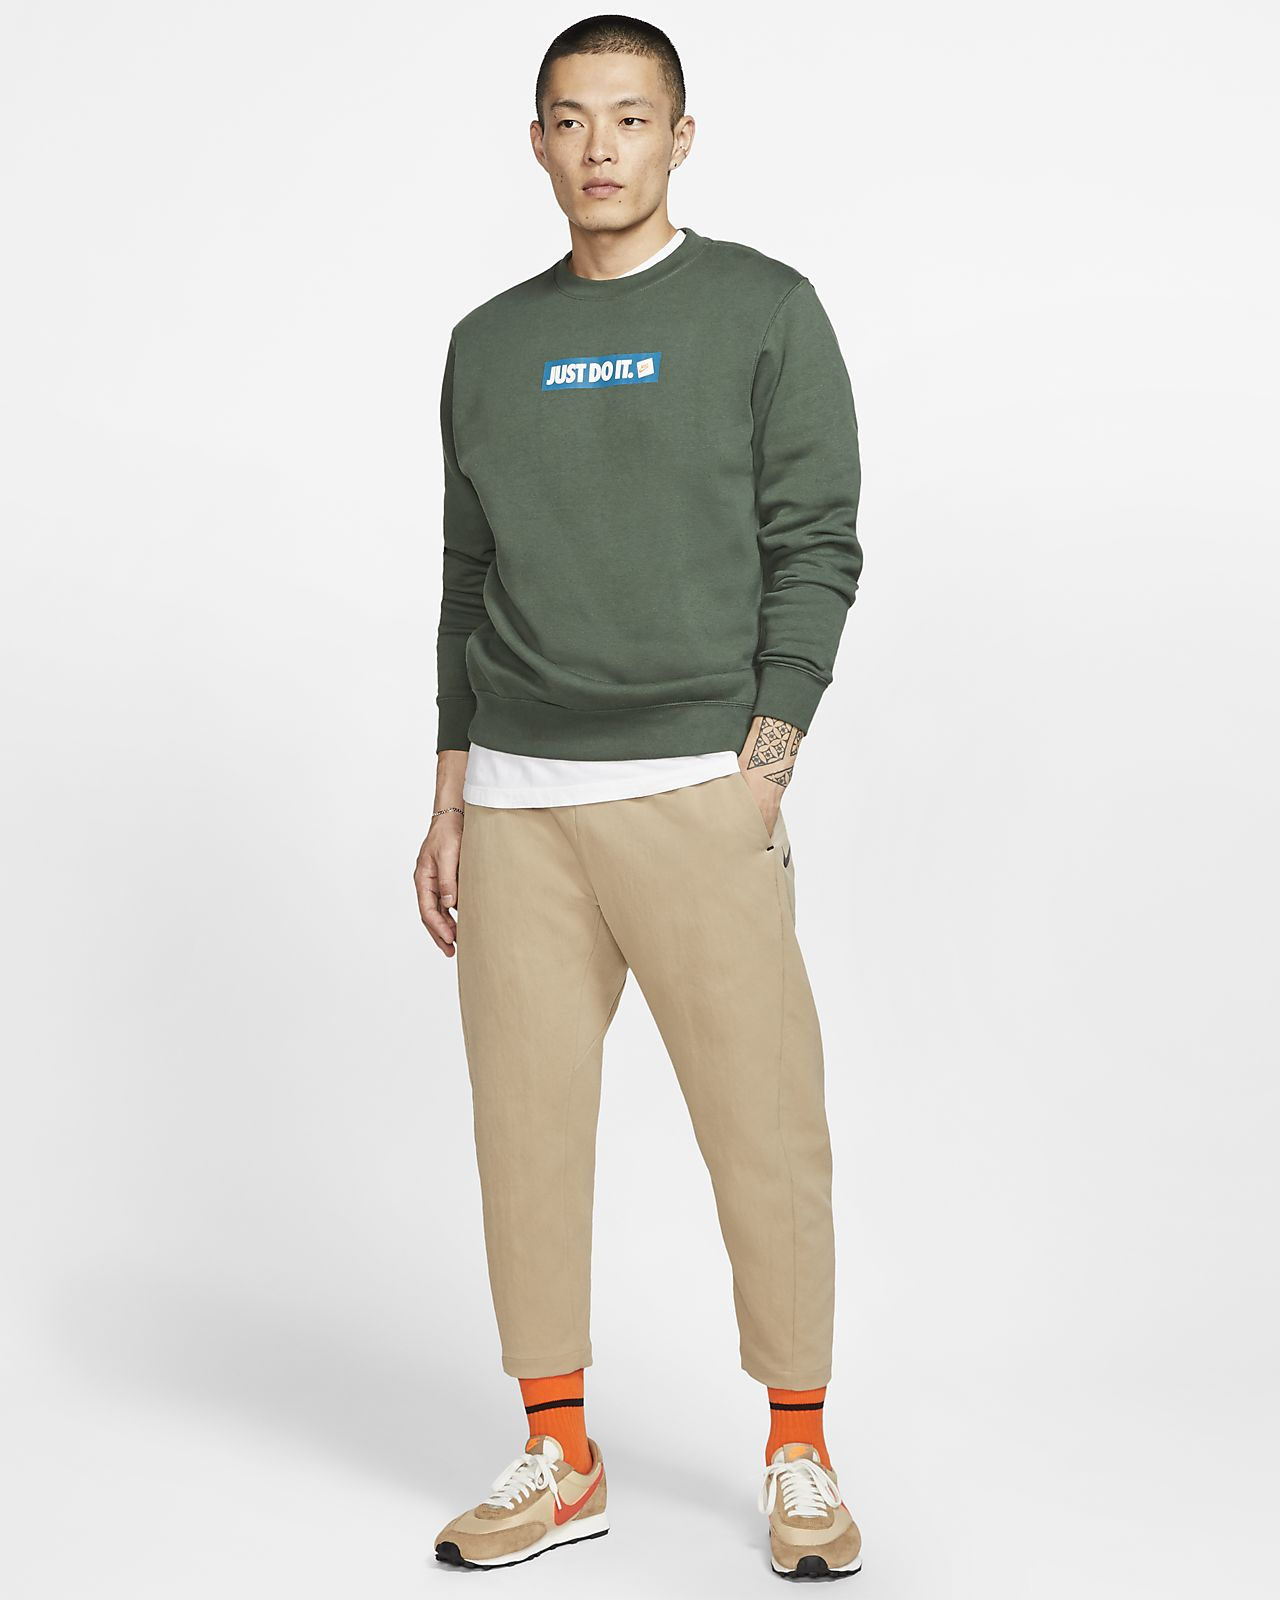 Nike Sportswear Men's JDI Fleece Crew